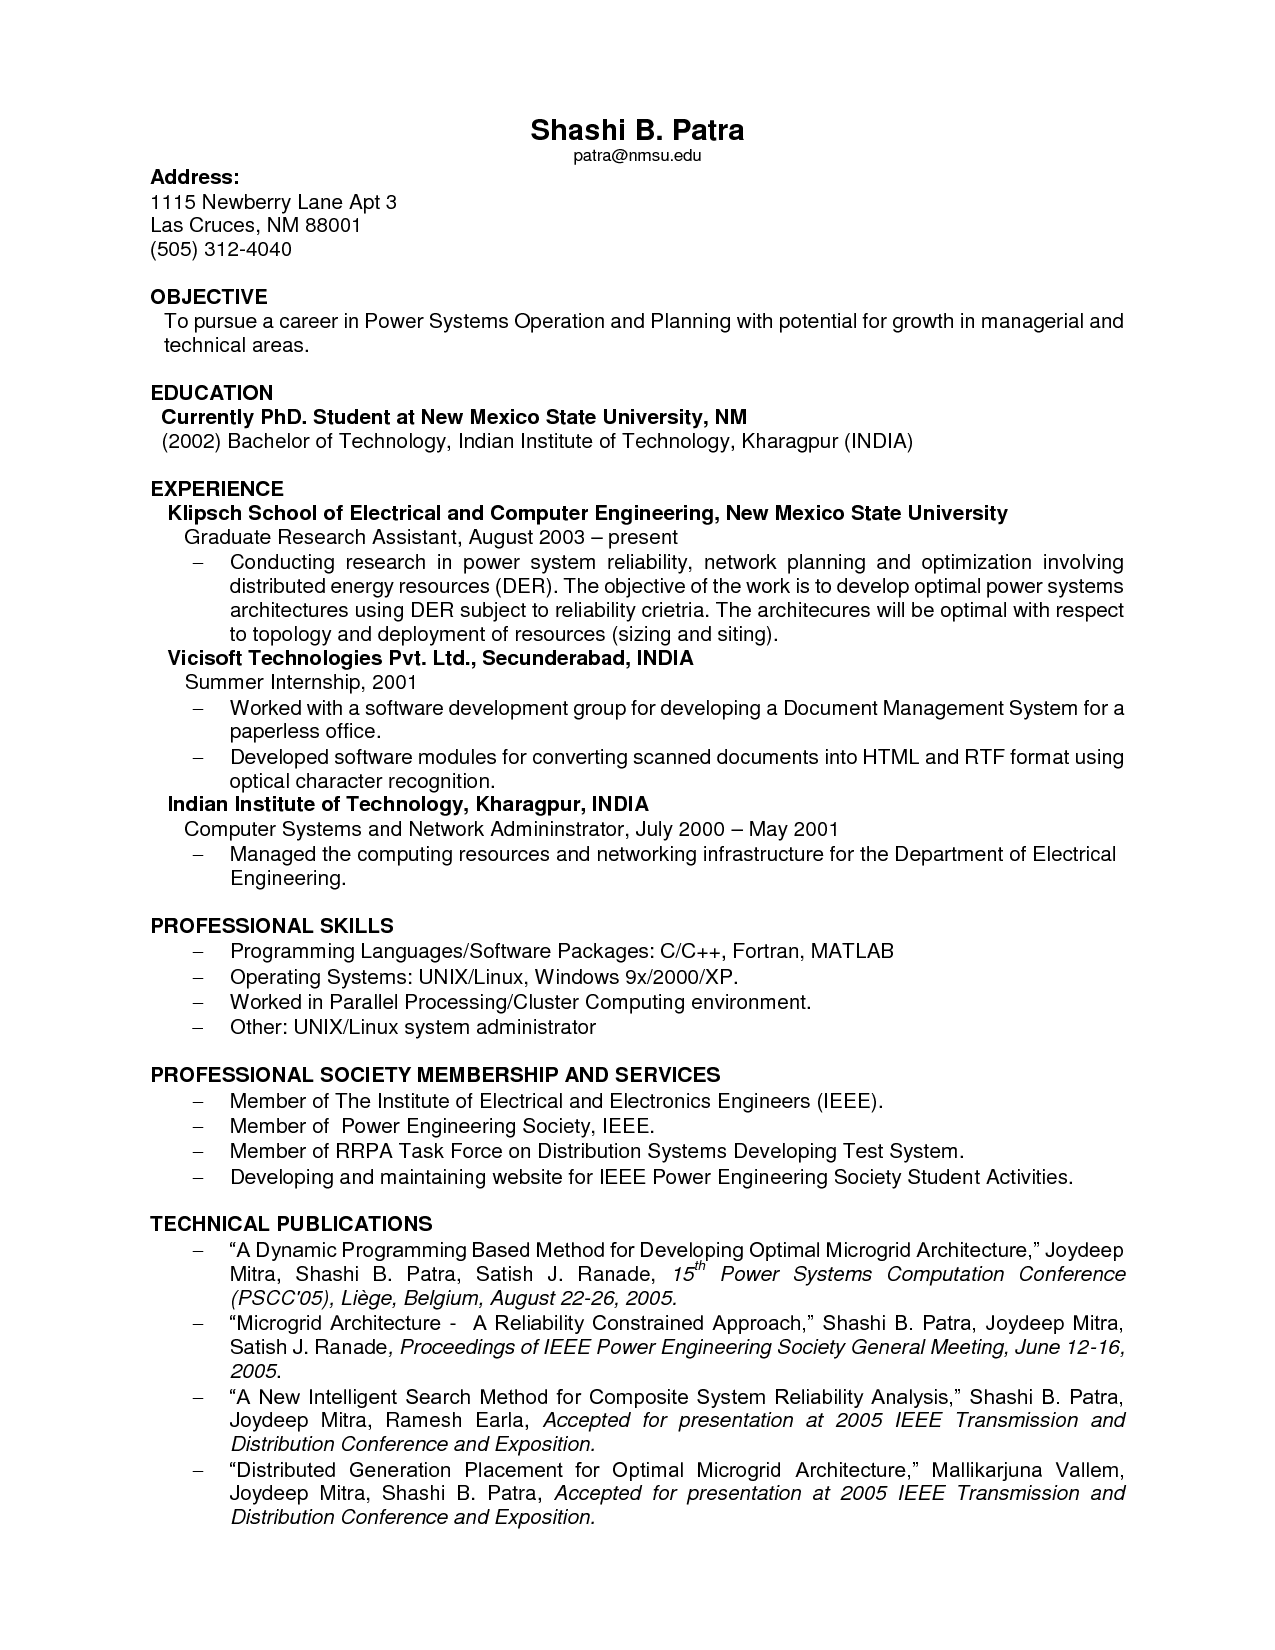 Windows Sys Administration Sample Resume Amusing 5 Star Resume Samples  Resume Templates  Pinterest  Sample Resume .